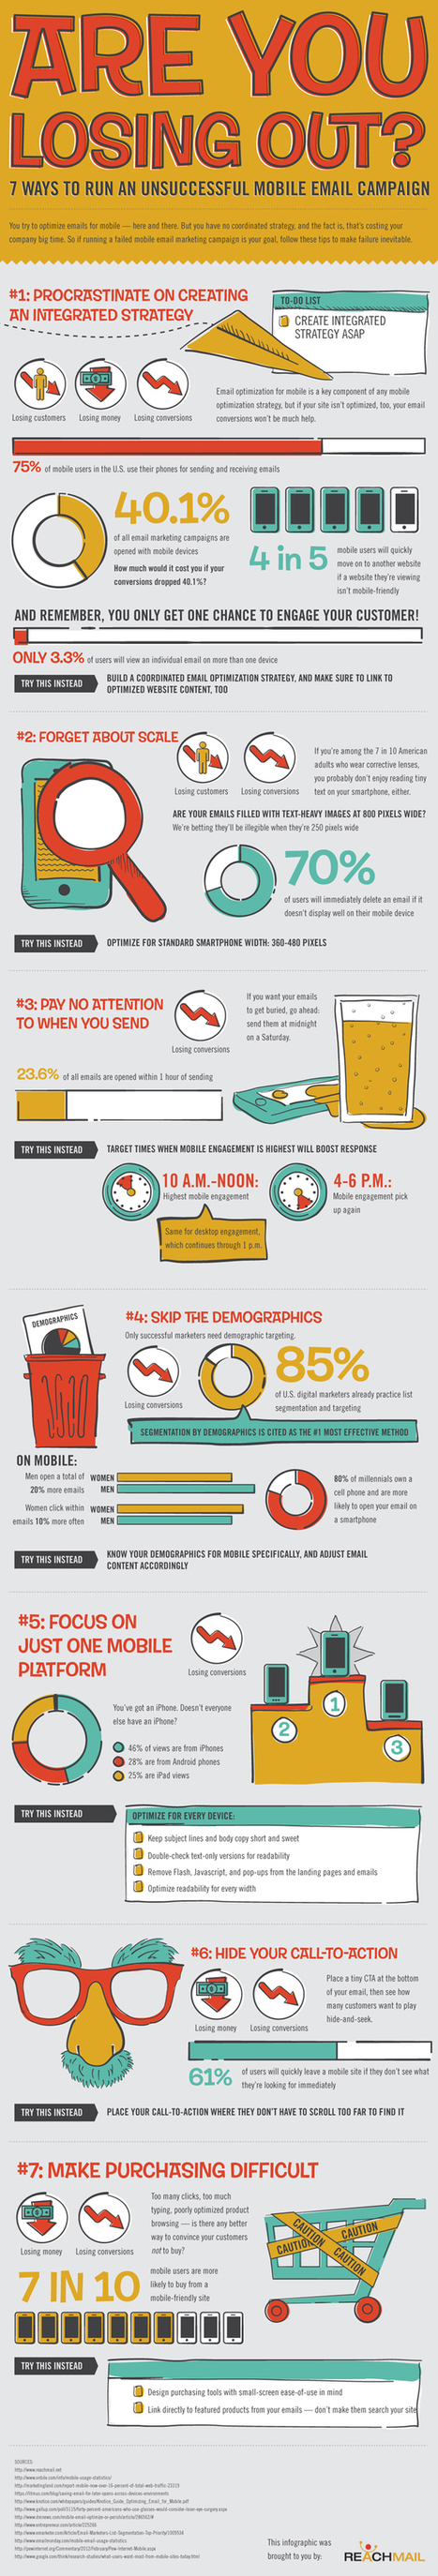 If You're Going to Market to Mobile Users, Do It Right [INFOGRAPHIC] | digital marketing | Scoop.it